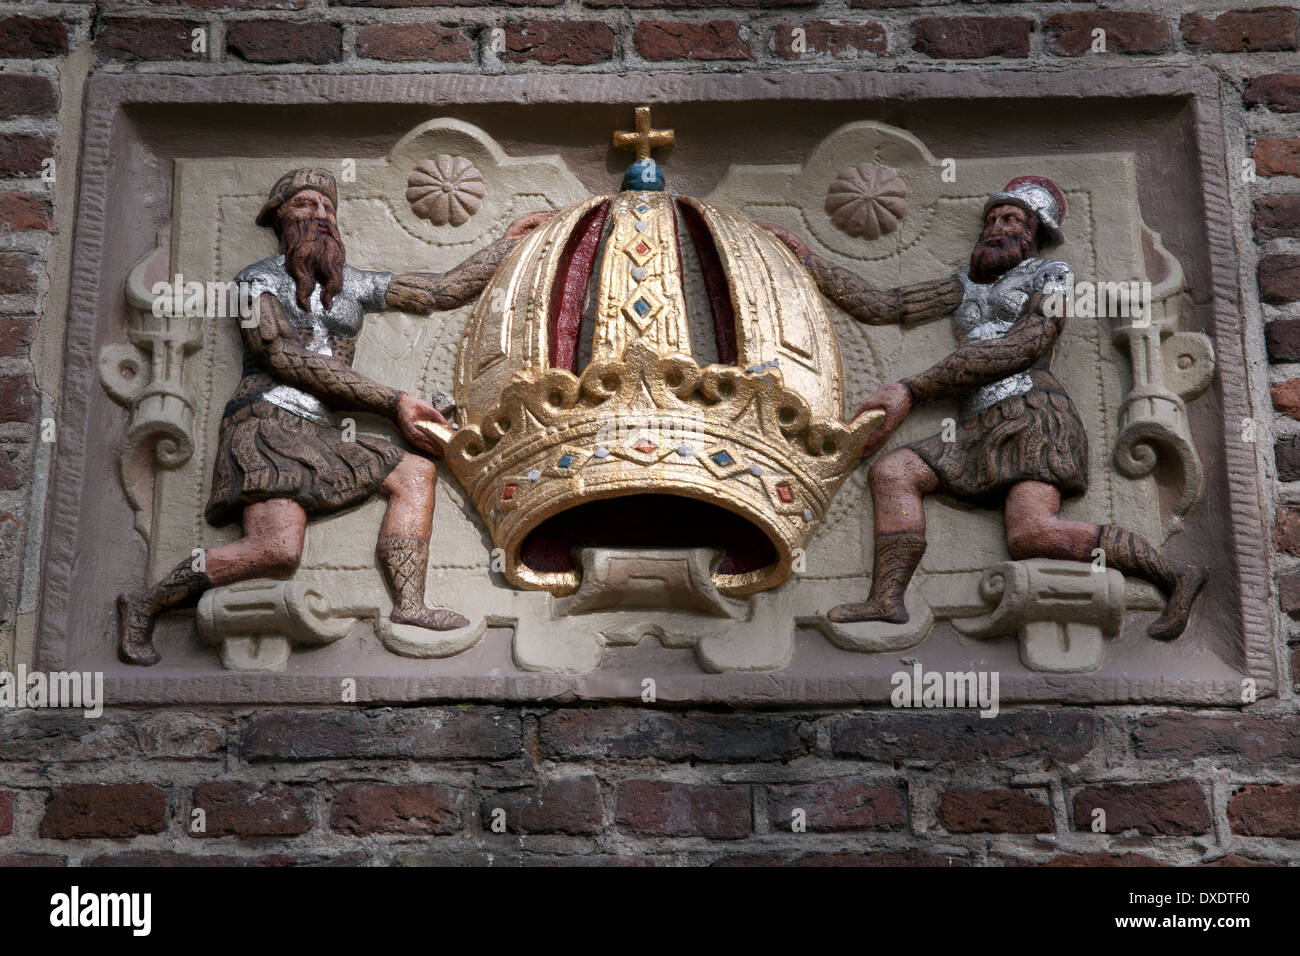 Soldiers holding a crown, a wall tile or gevelsteen in Amsterdam the Netherlands - Stock Image